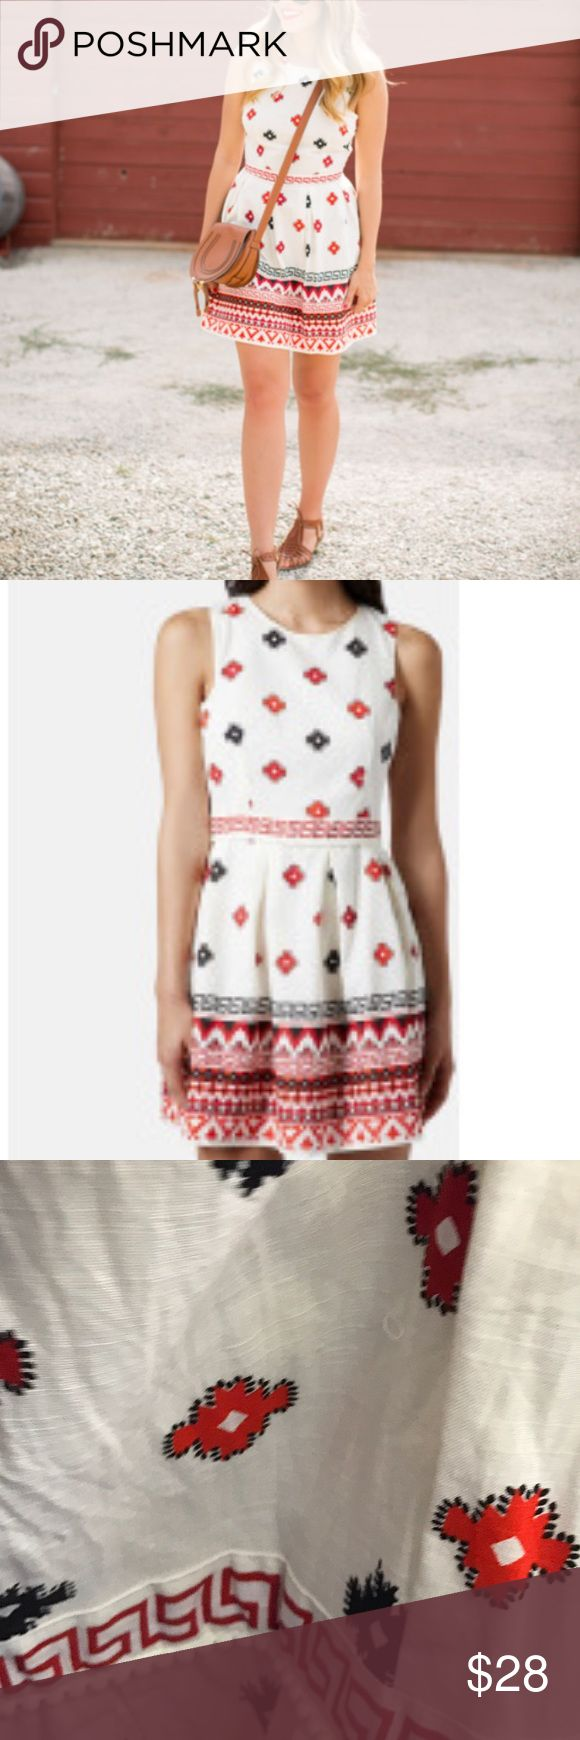 Topshop Aztec print dress Topshop dress with Aztec inspired print. Resembles embroidery. Fully lined. 100% cotton. Hits above the knees. White, red and navy blue Topshop Dresses